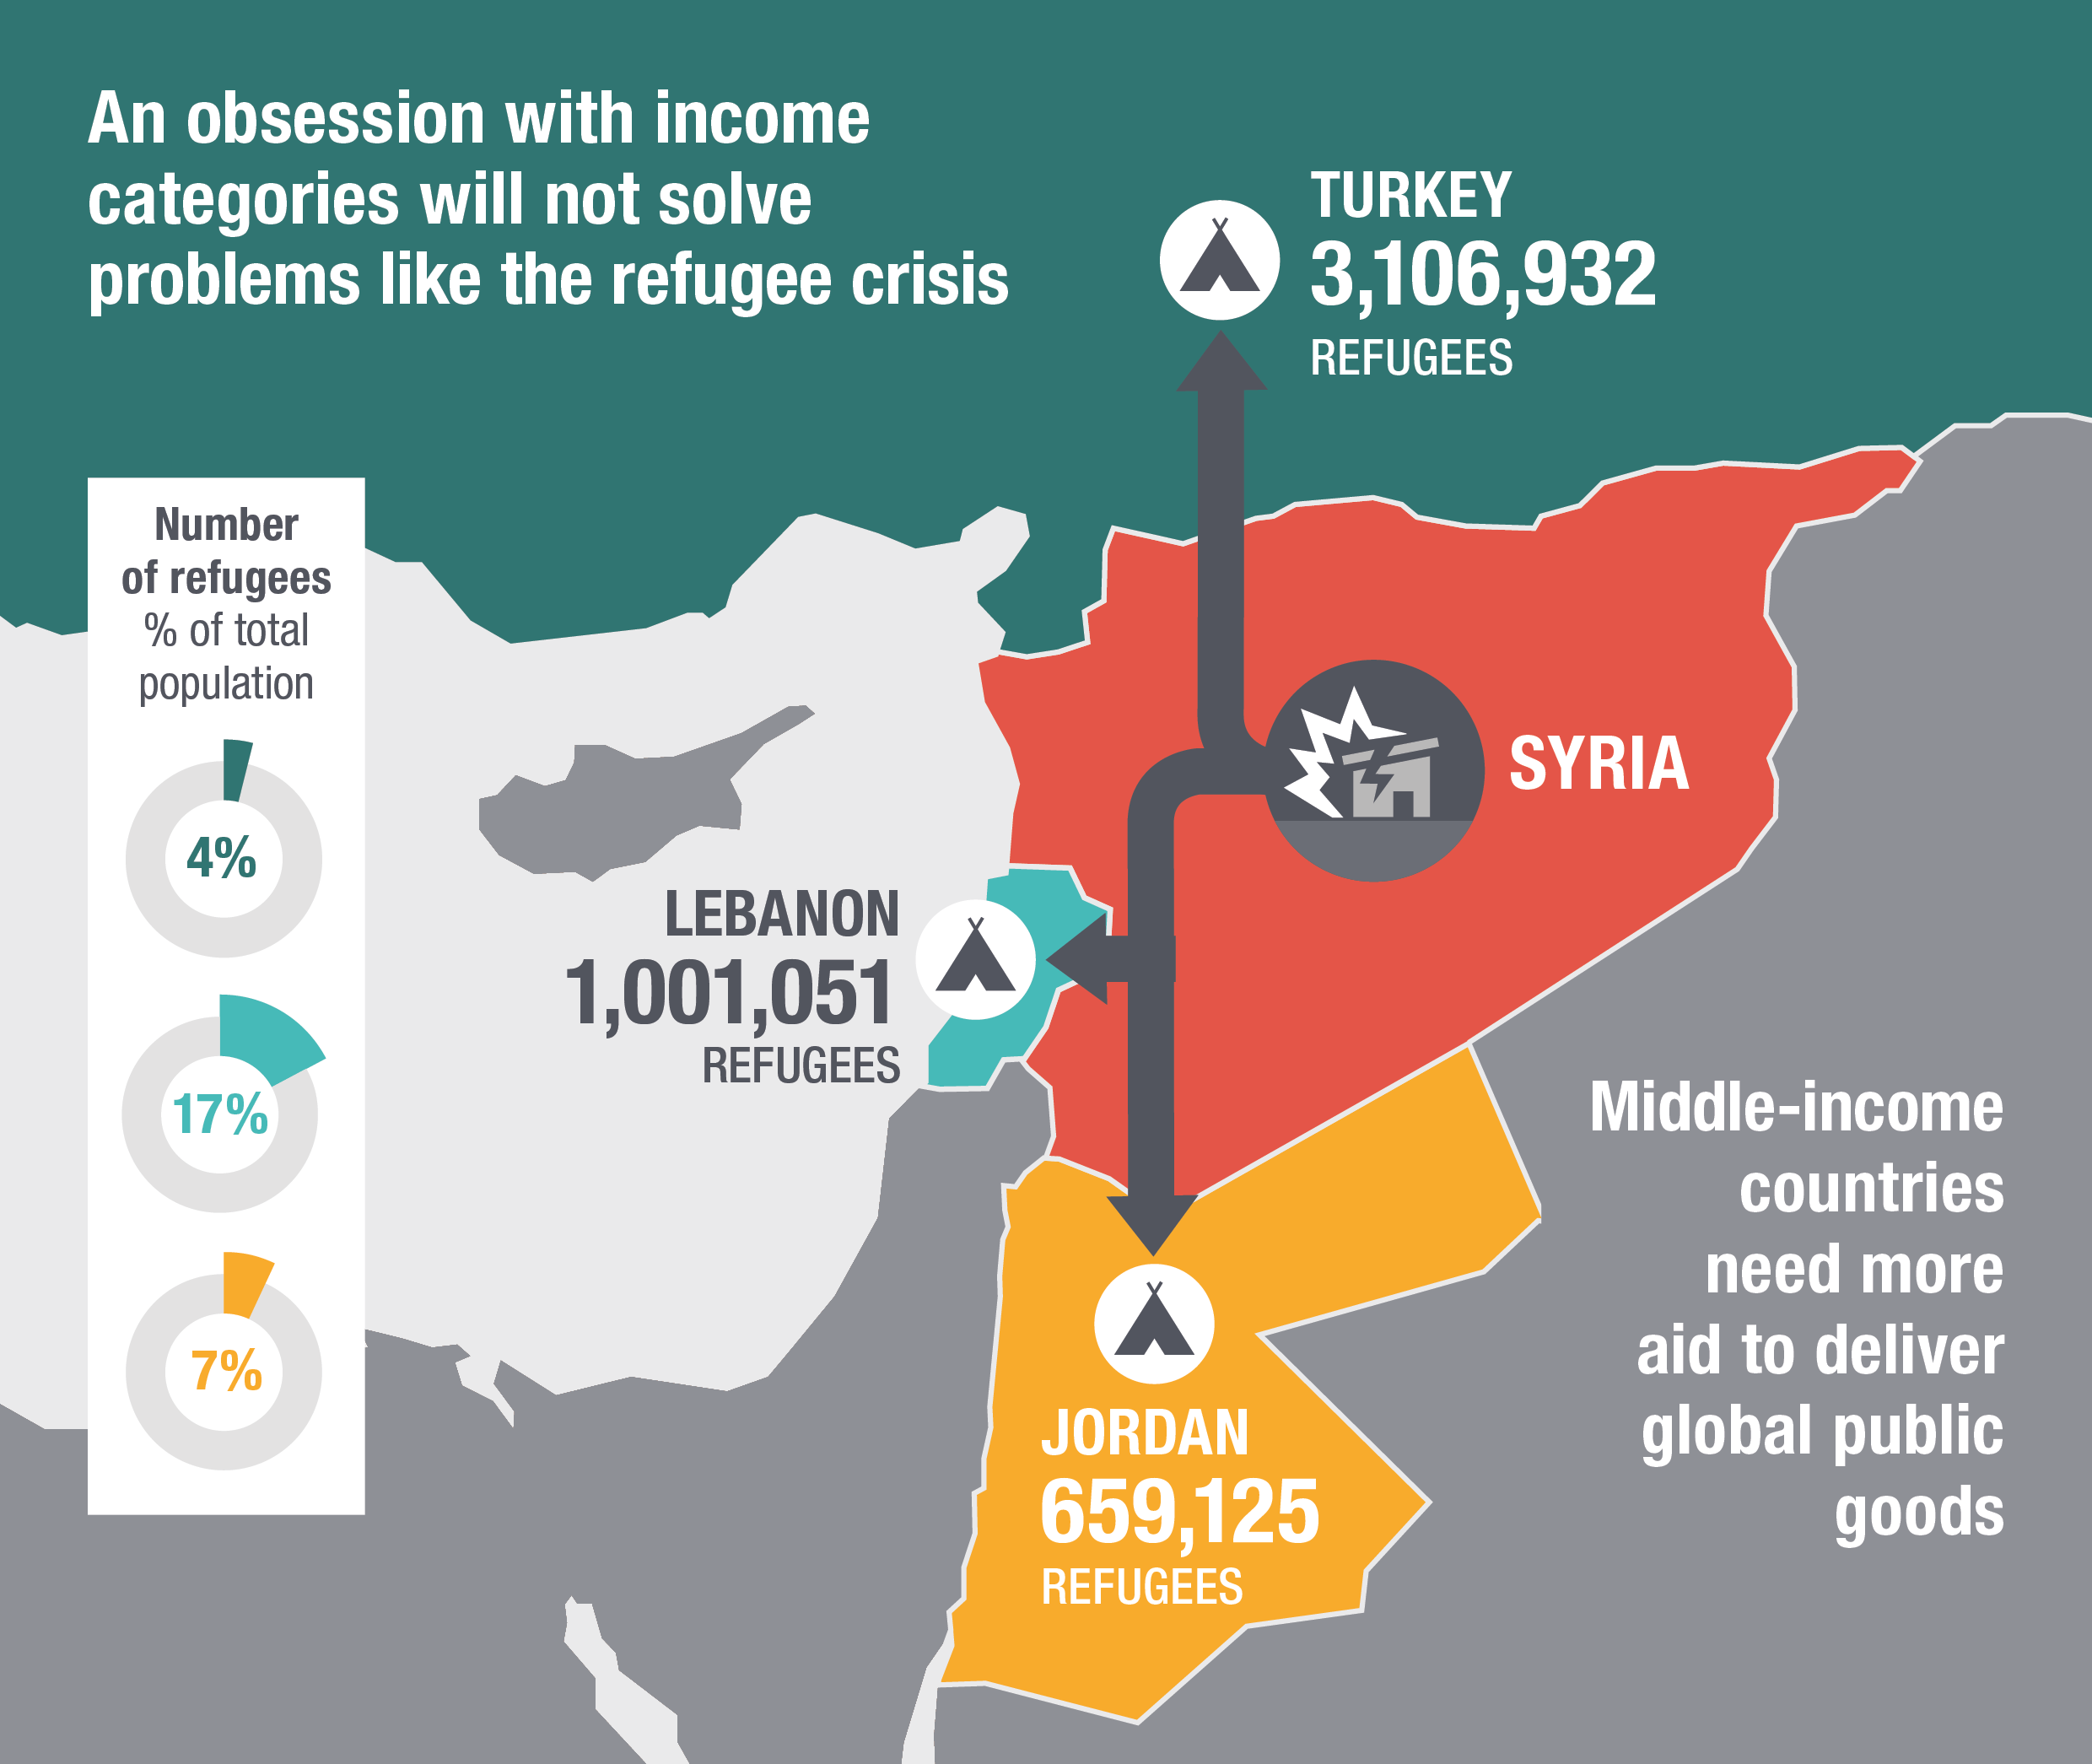 An obsession with income categories will not solve the world's problems like the refugee crisis